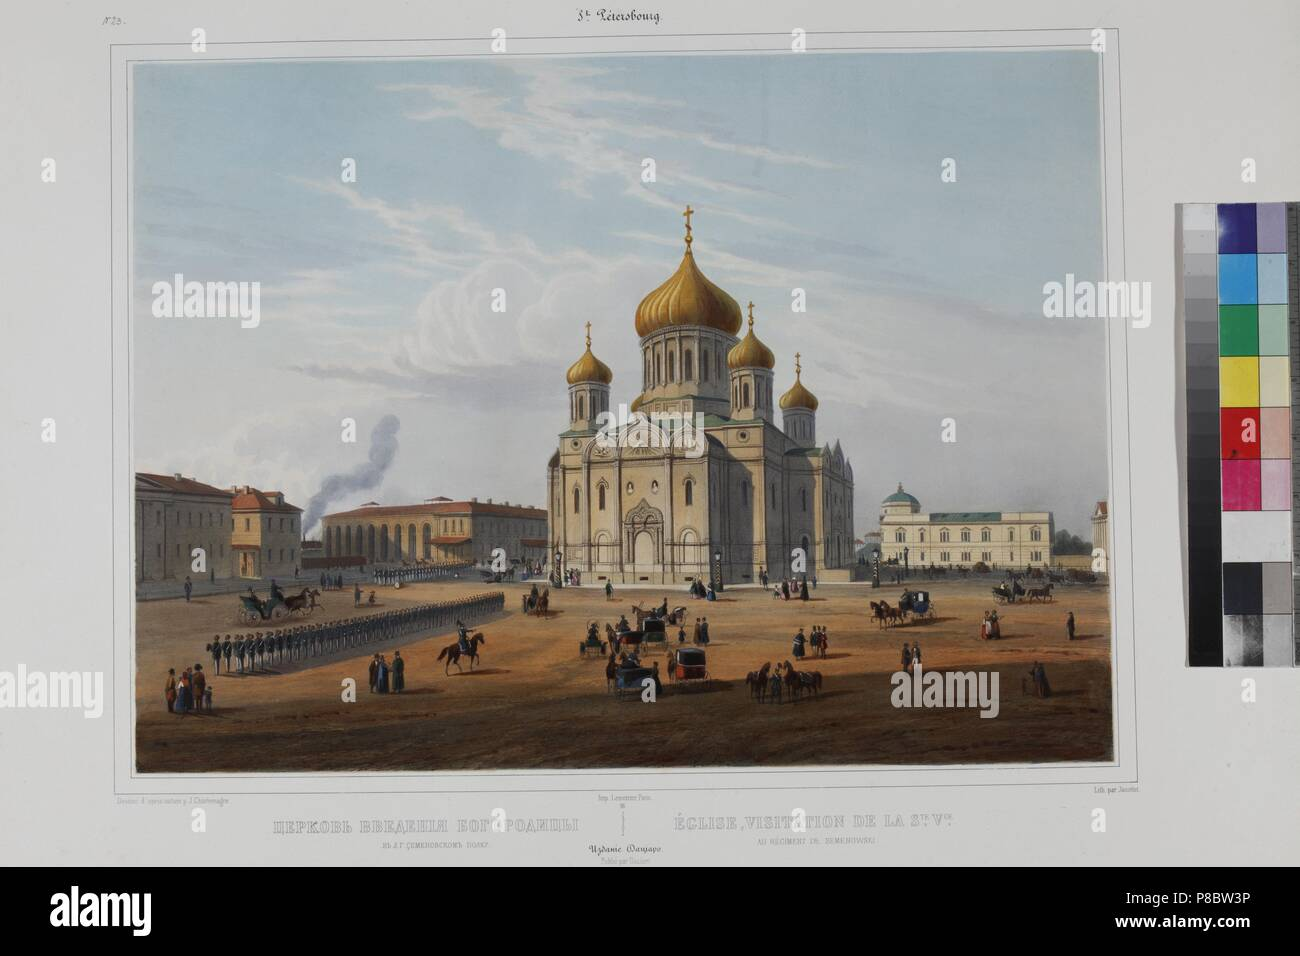 About the guards of the Moscow sky